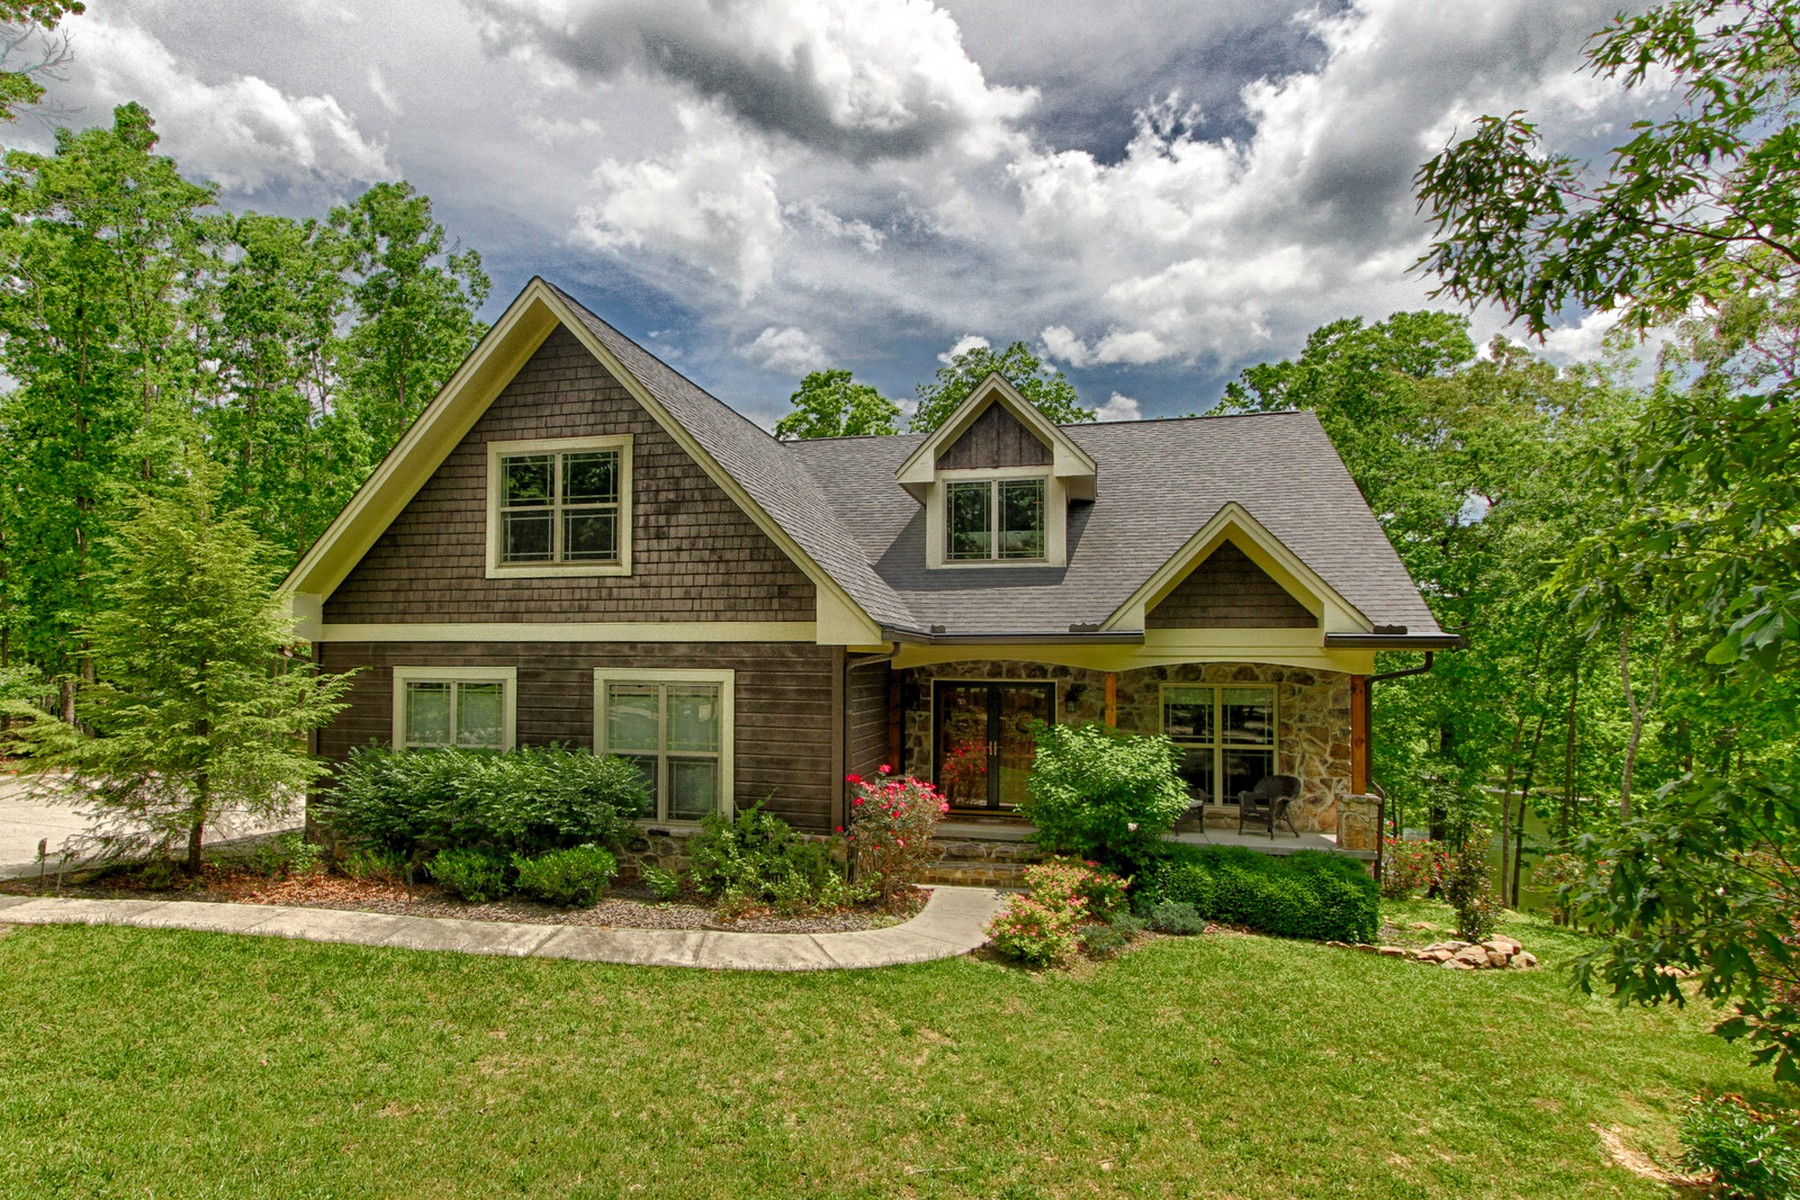 Single Family Home for Sale at The Perfect Home In The Perfect Location 308 Hemlock Lane Spencer, Tennessee 38585 United States